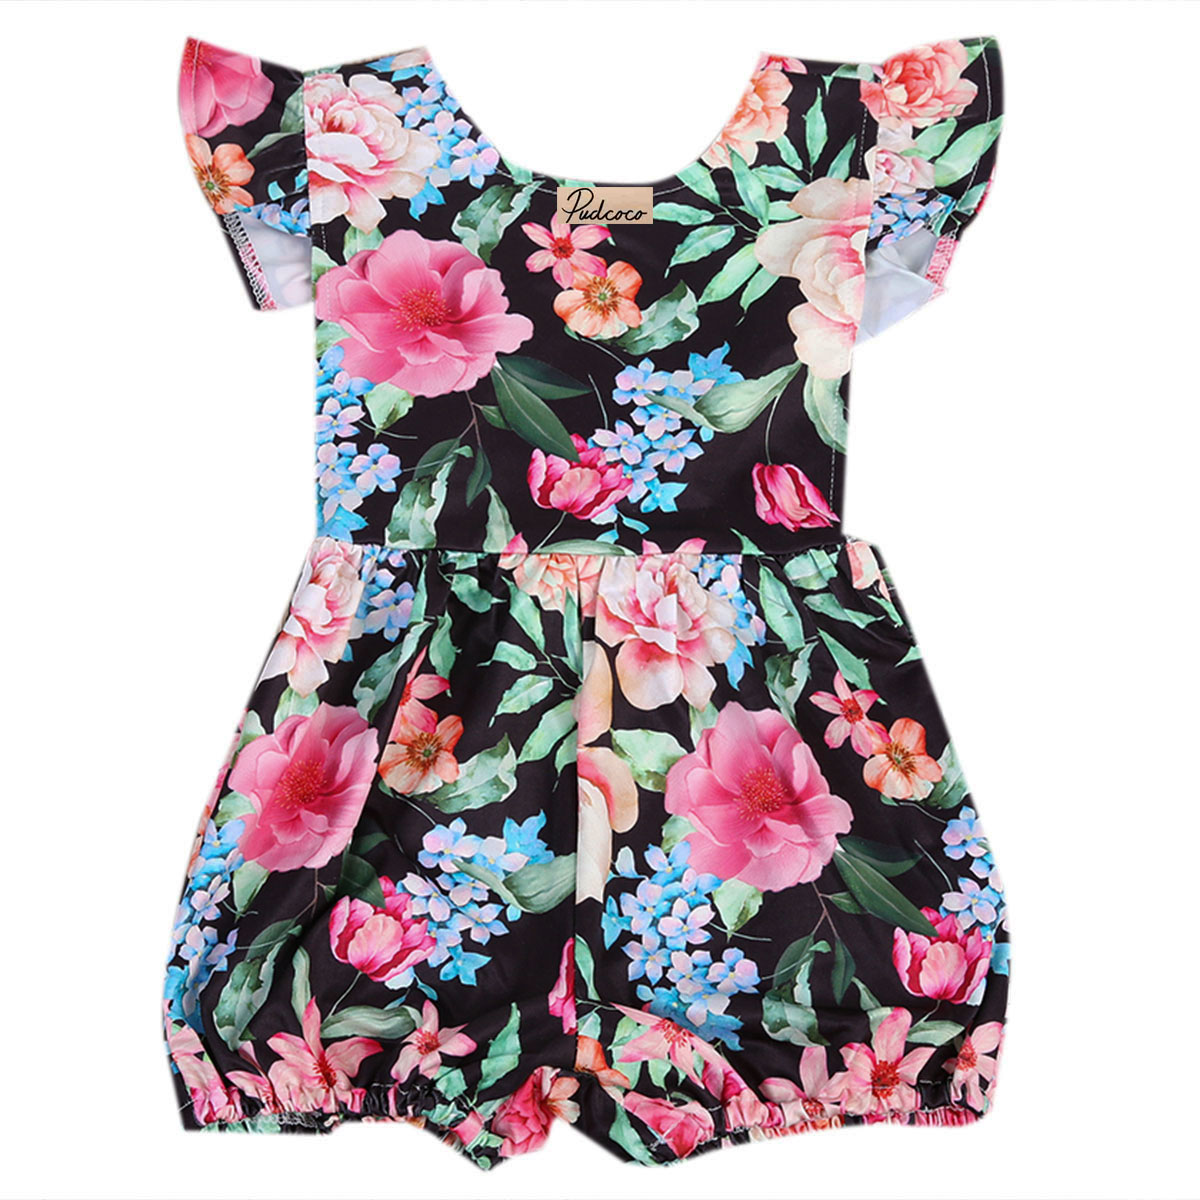 One-Pieces Cute Newborn Infant Baby Girls Sleeveless Black Floral Romper Outfits Summer Sunsuit Clothes summer newborn infant baby girl romper short sleeve floral romper jumpsuit outfits sunsuit clothes